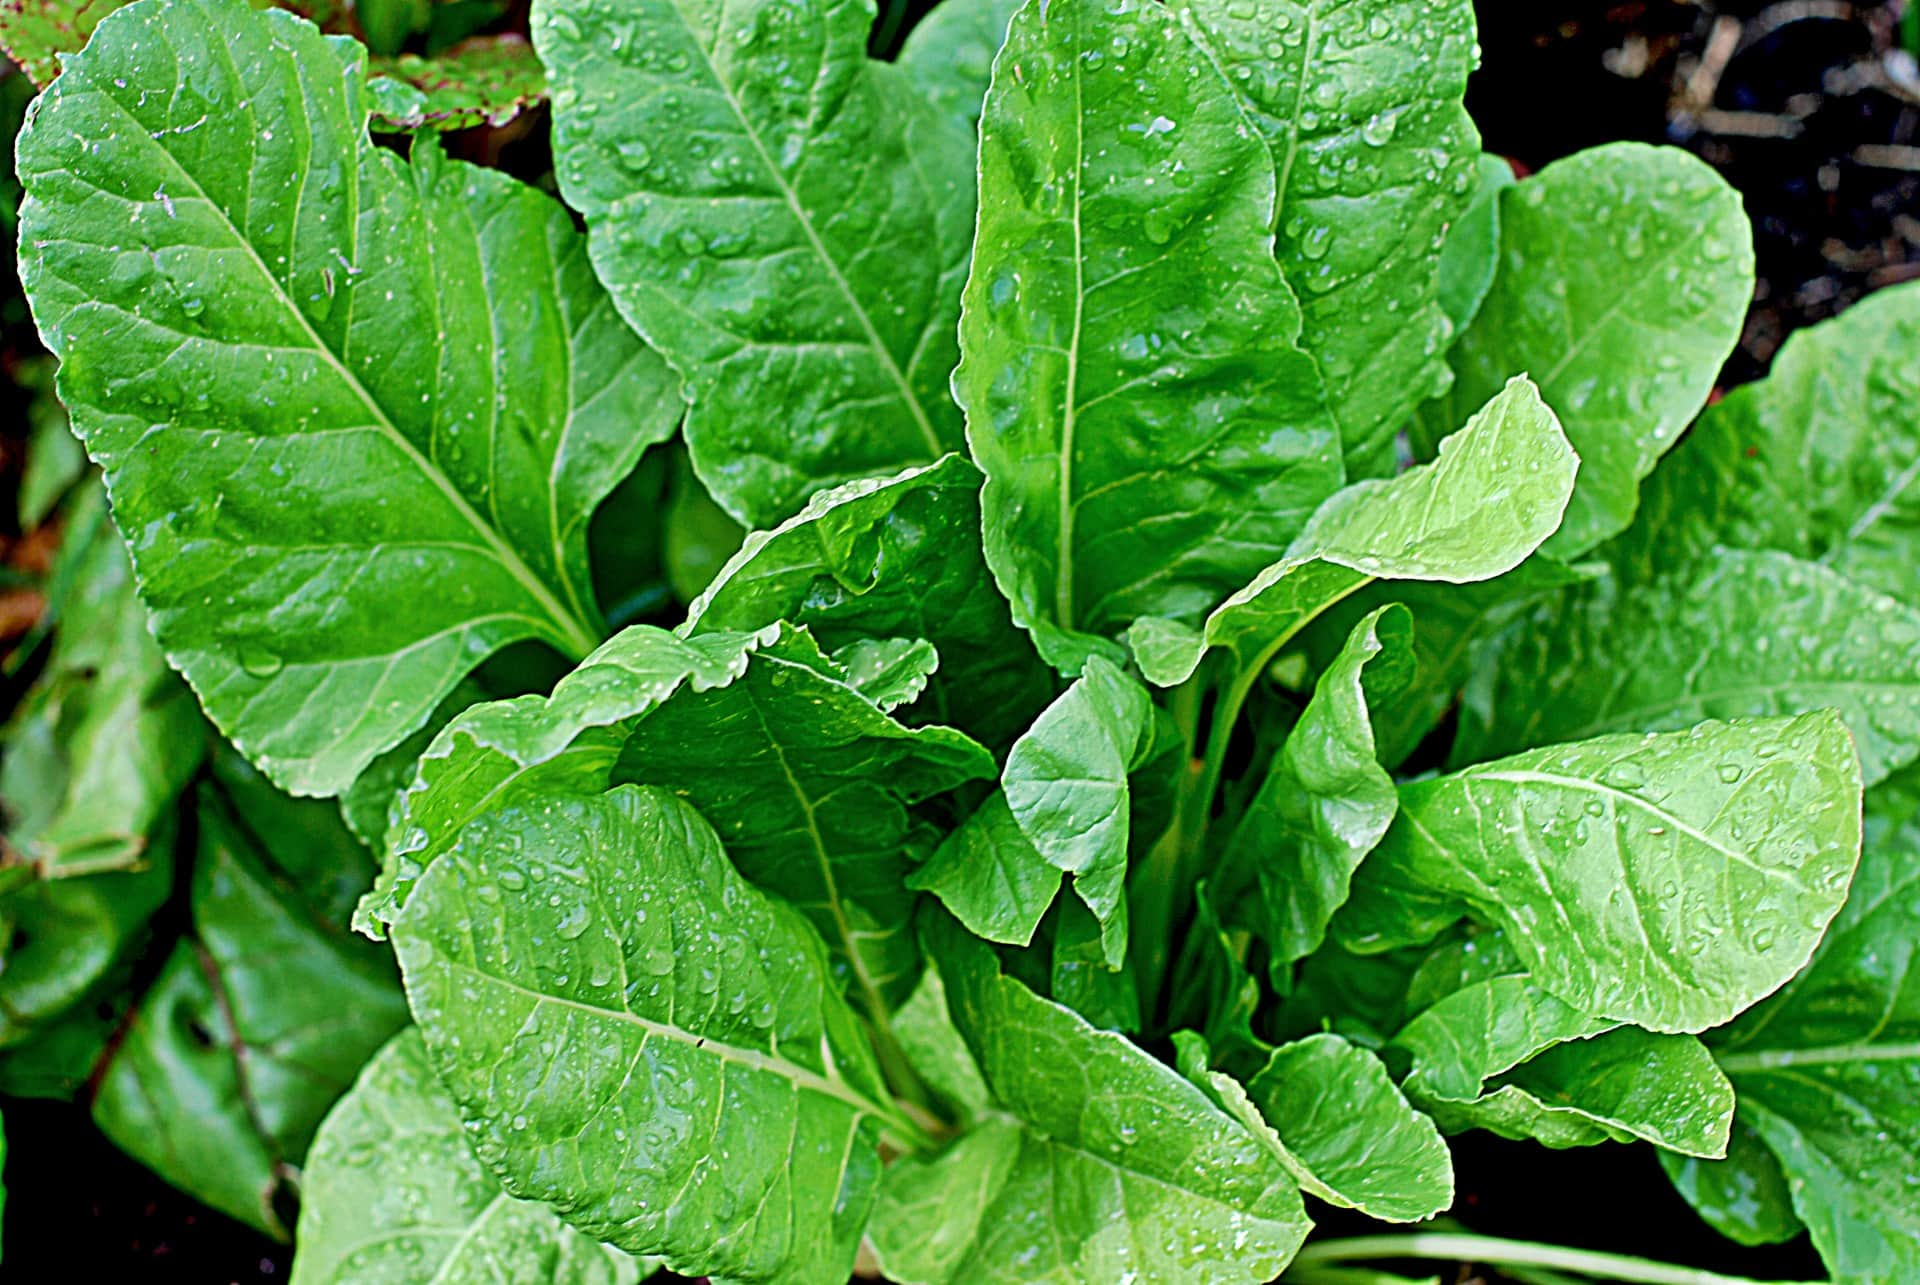 Enjoy the all the amazing health benefits of this super food spring crop with five favorite spinach recipes you can whip up in no time.